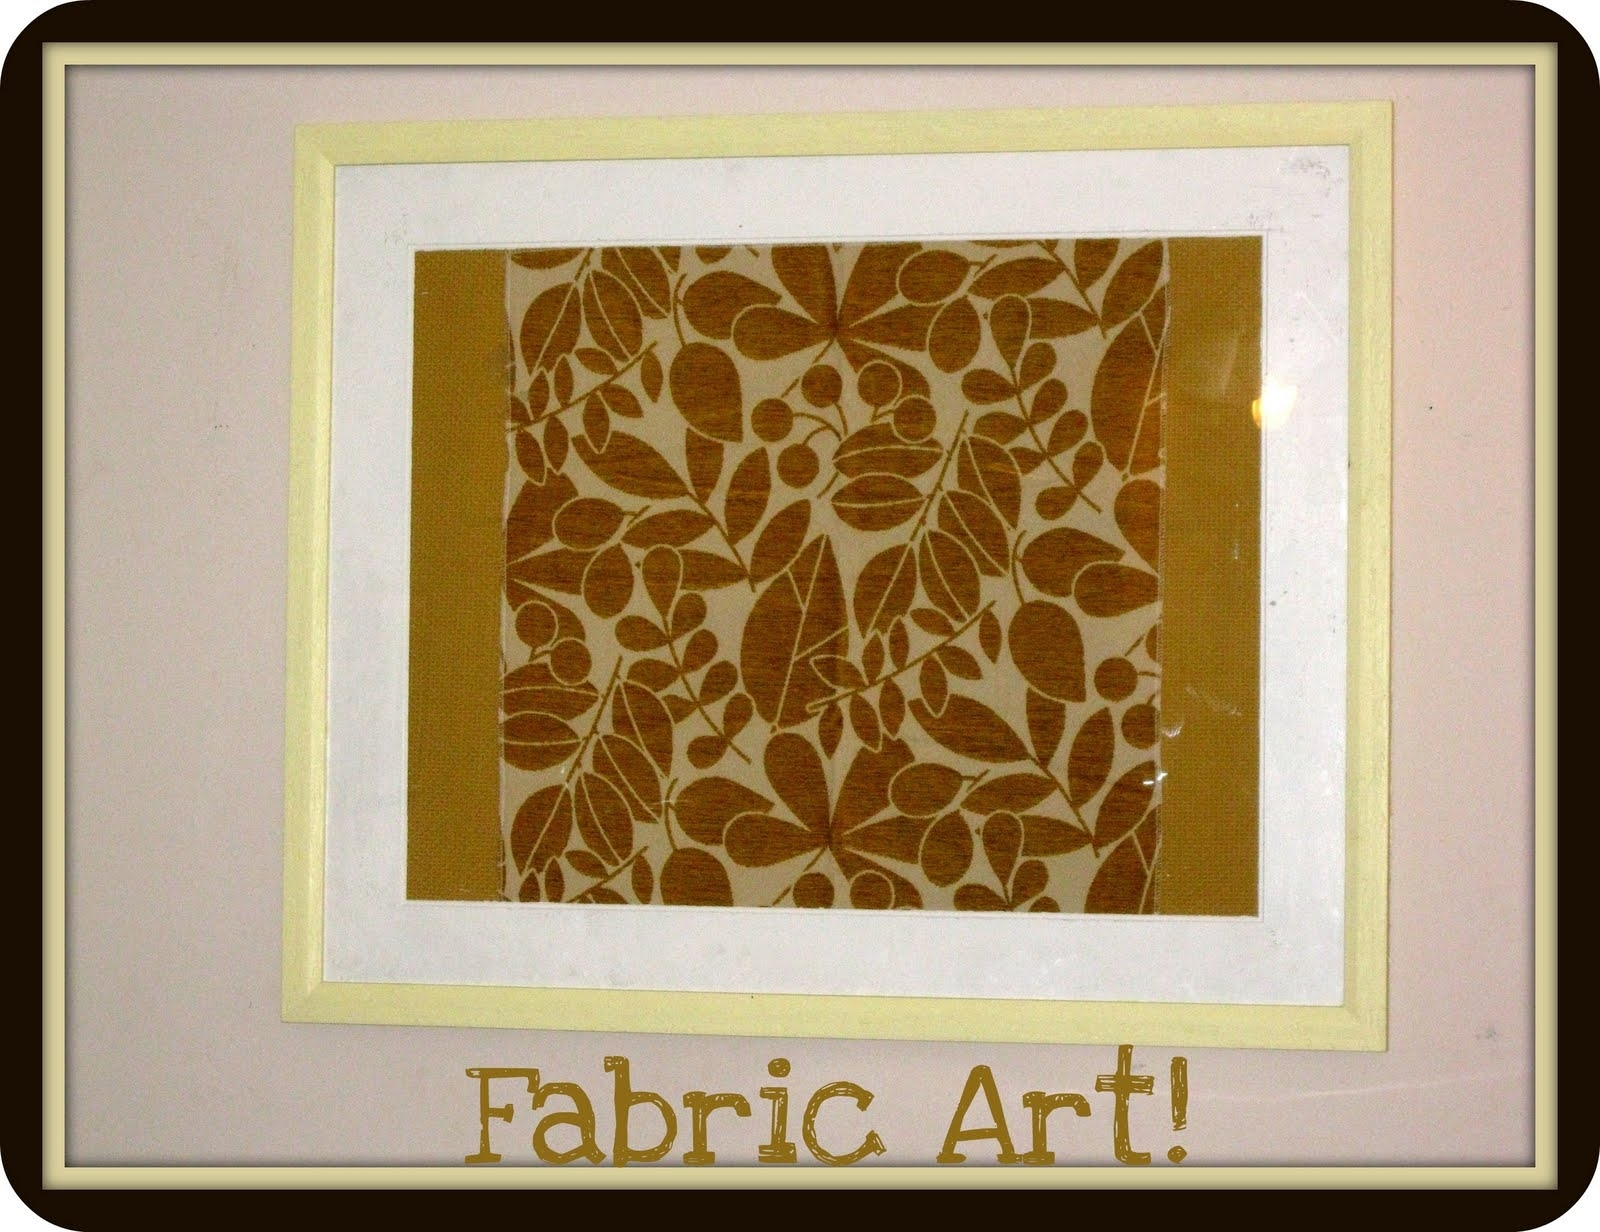 Framed Fabric Wall Art E2 80 94 Crafthubs Cheap Simple Diy with regard to Most Recently Released Simple Fabric Wall Art